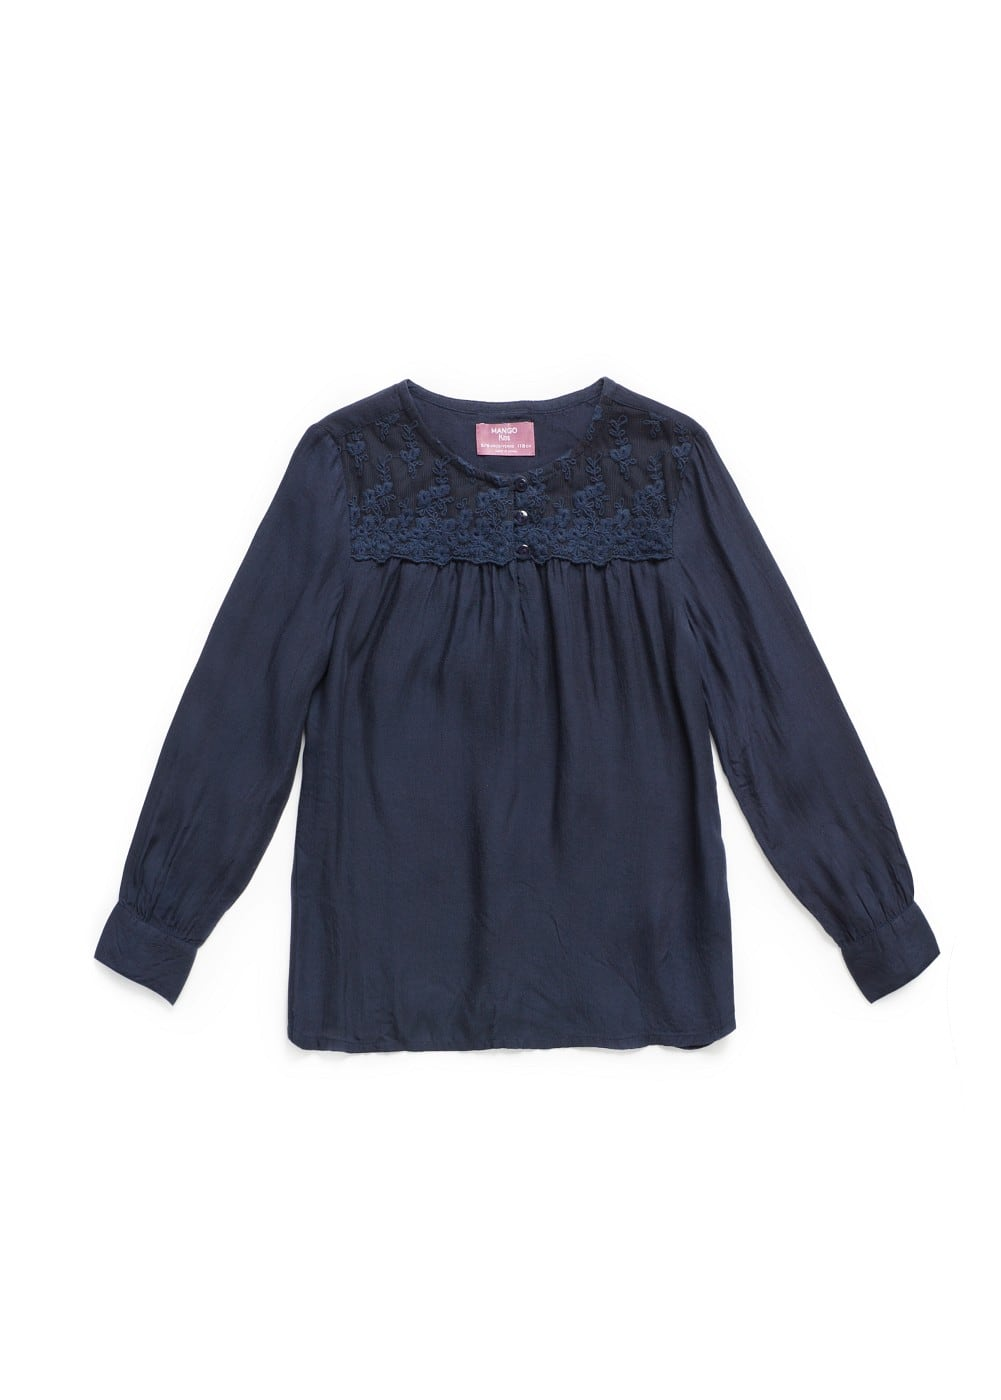 LACE APPLIQUÉ SHIRT